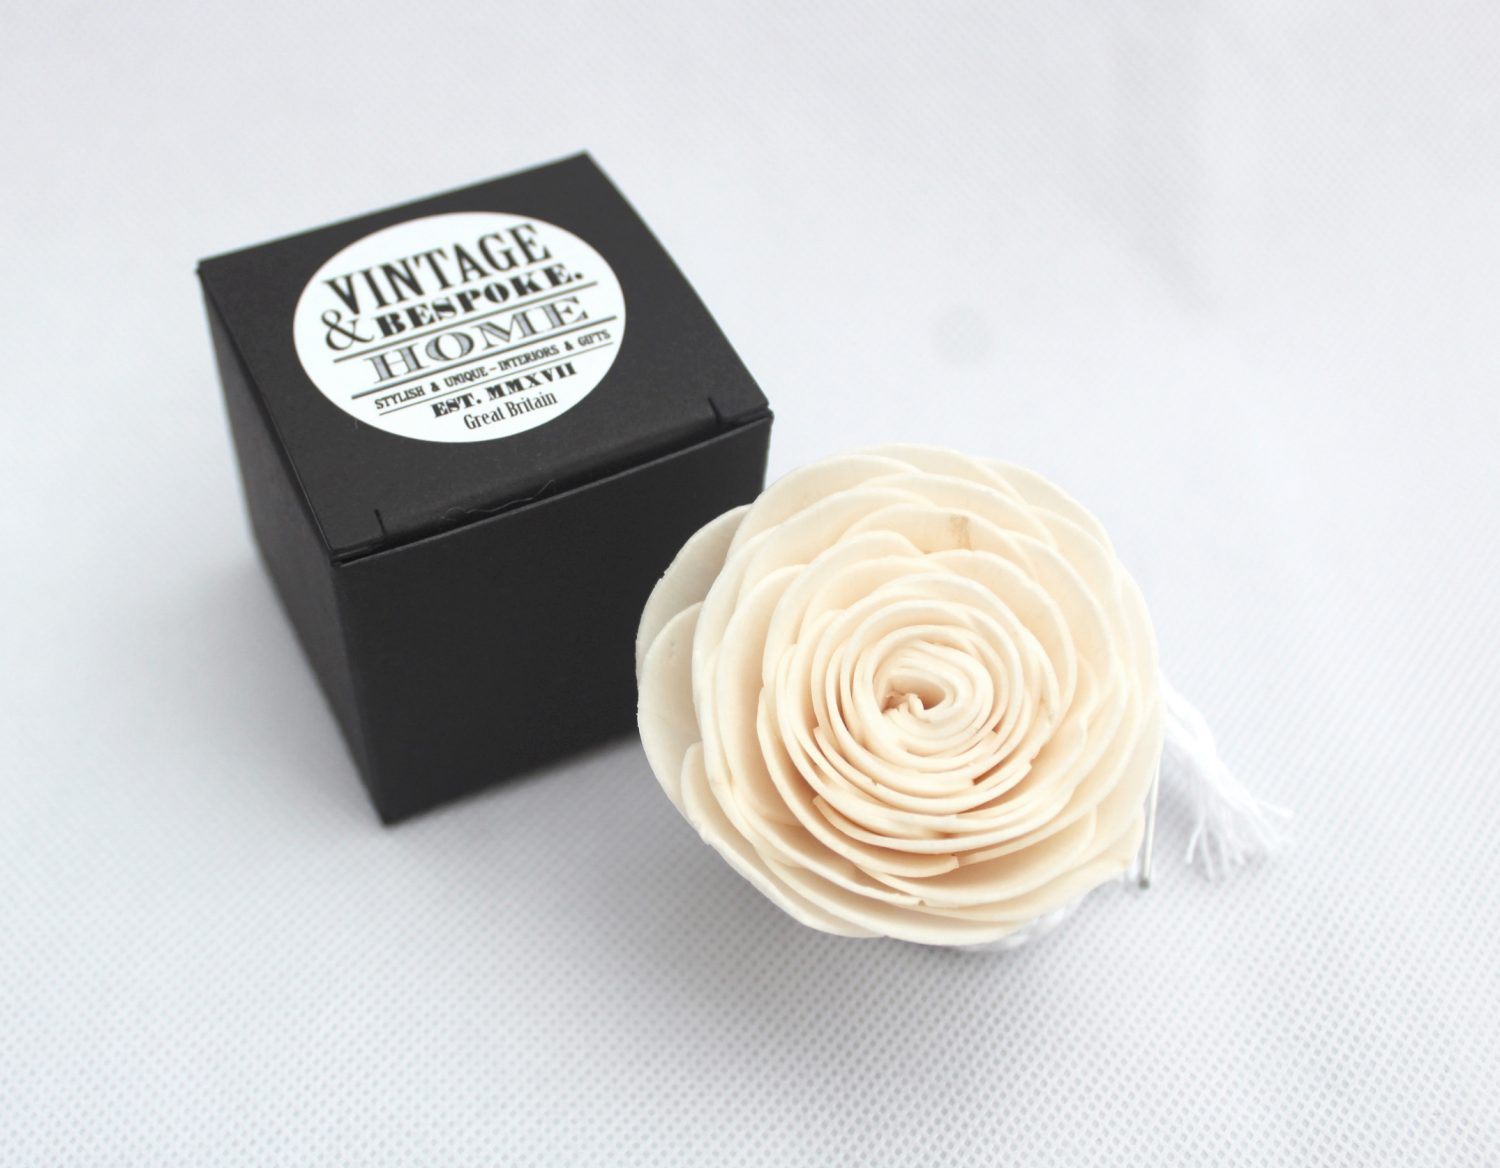 Small rose diffuser flower from Vintage & Bespoke Ltd